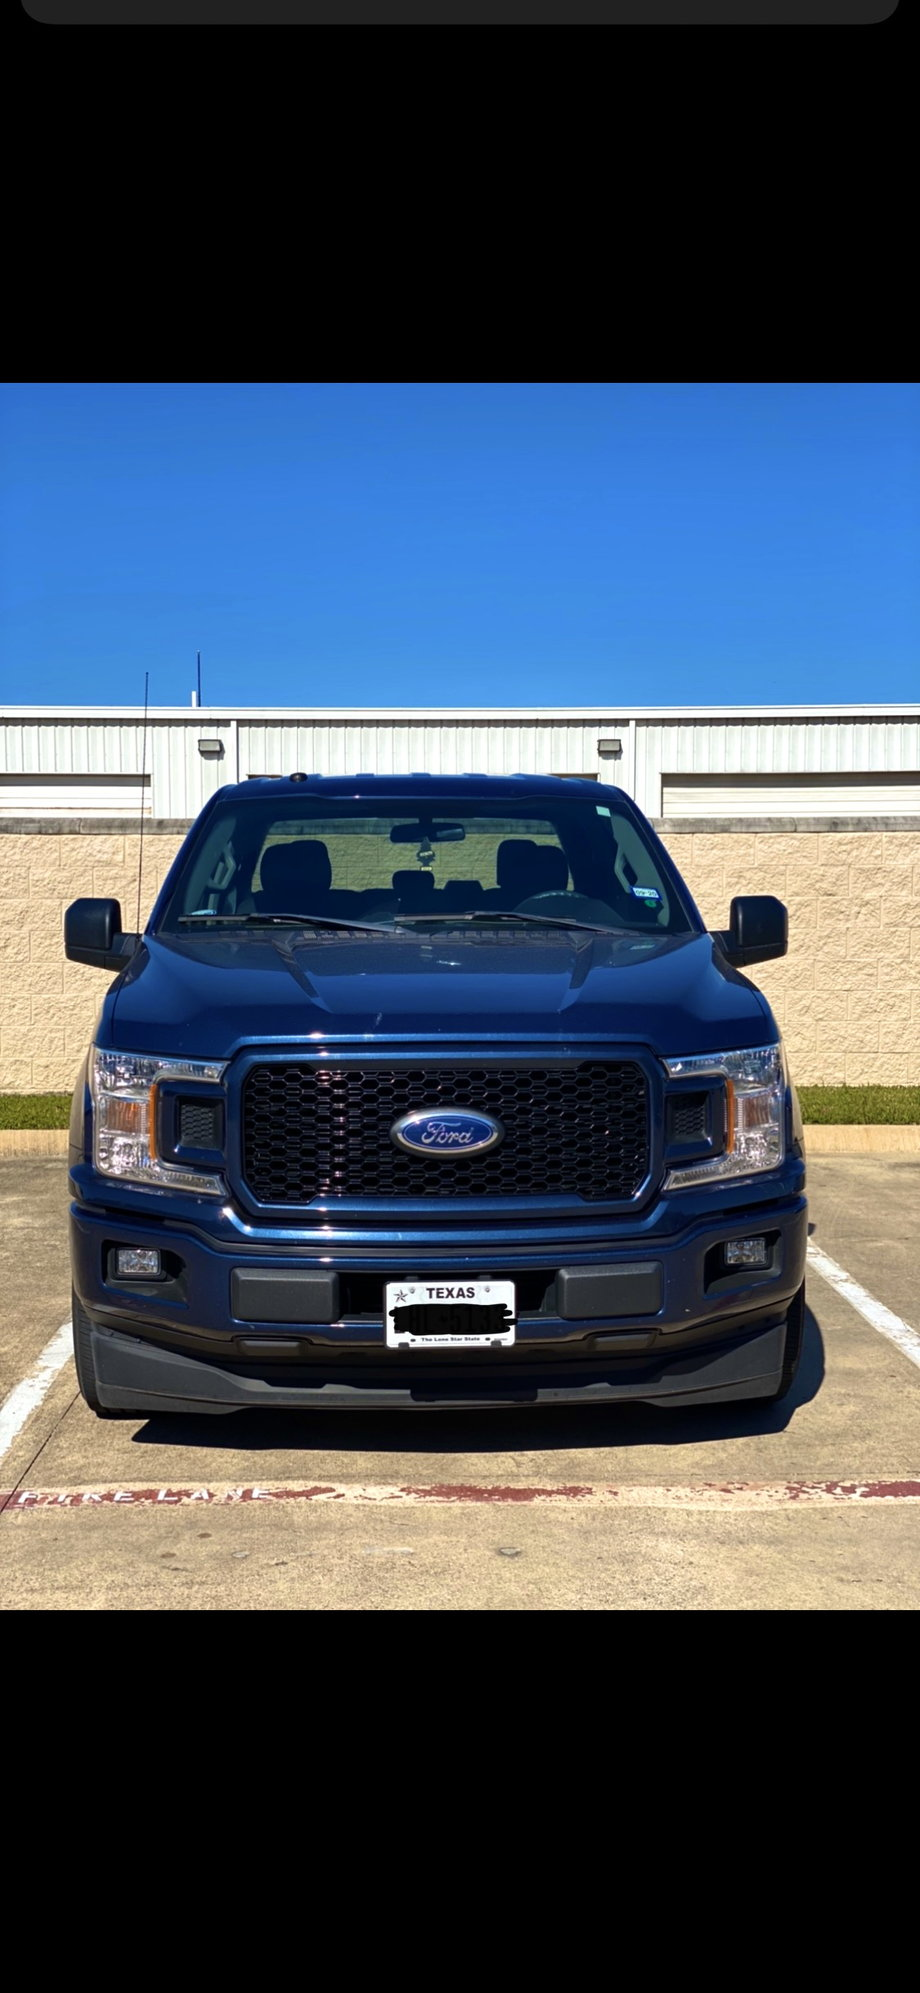 Ford F150 Blue Jeans : jeans, Jeans, F-150, Forum, Community, Truck